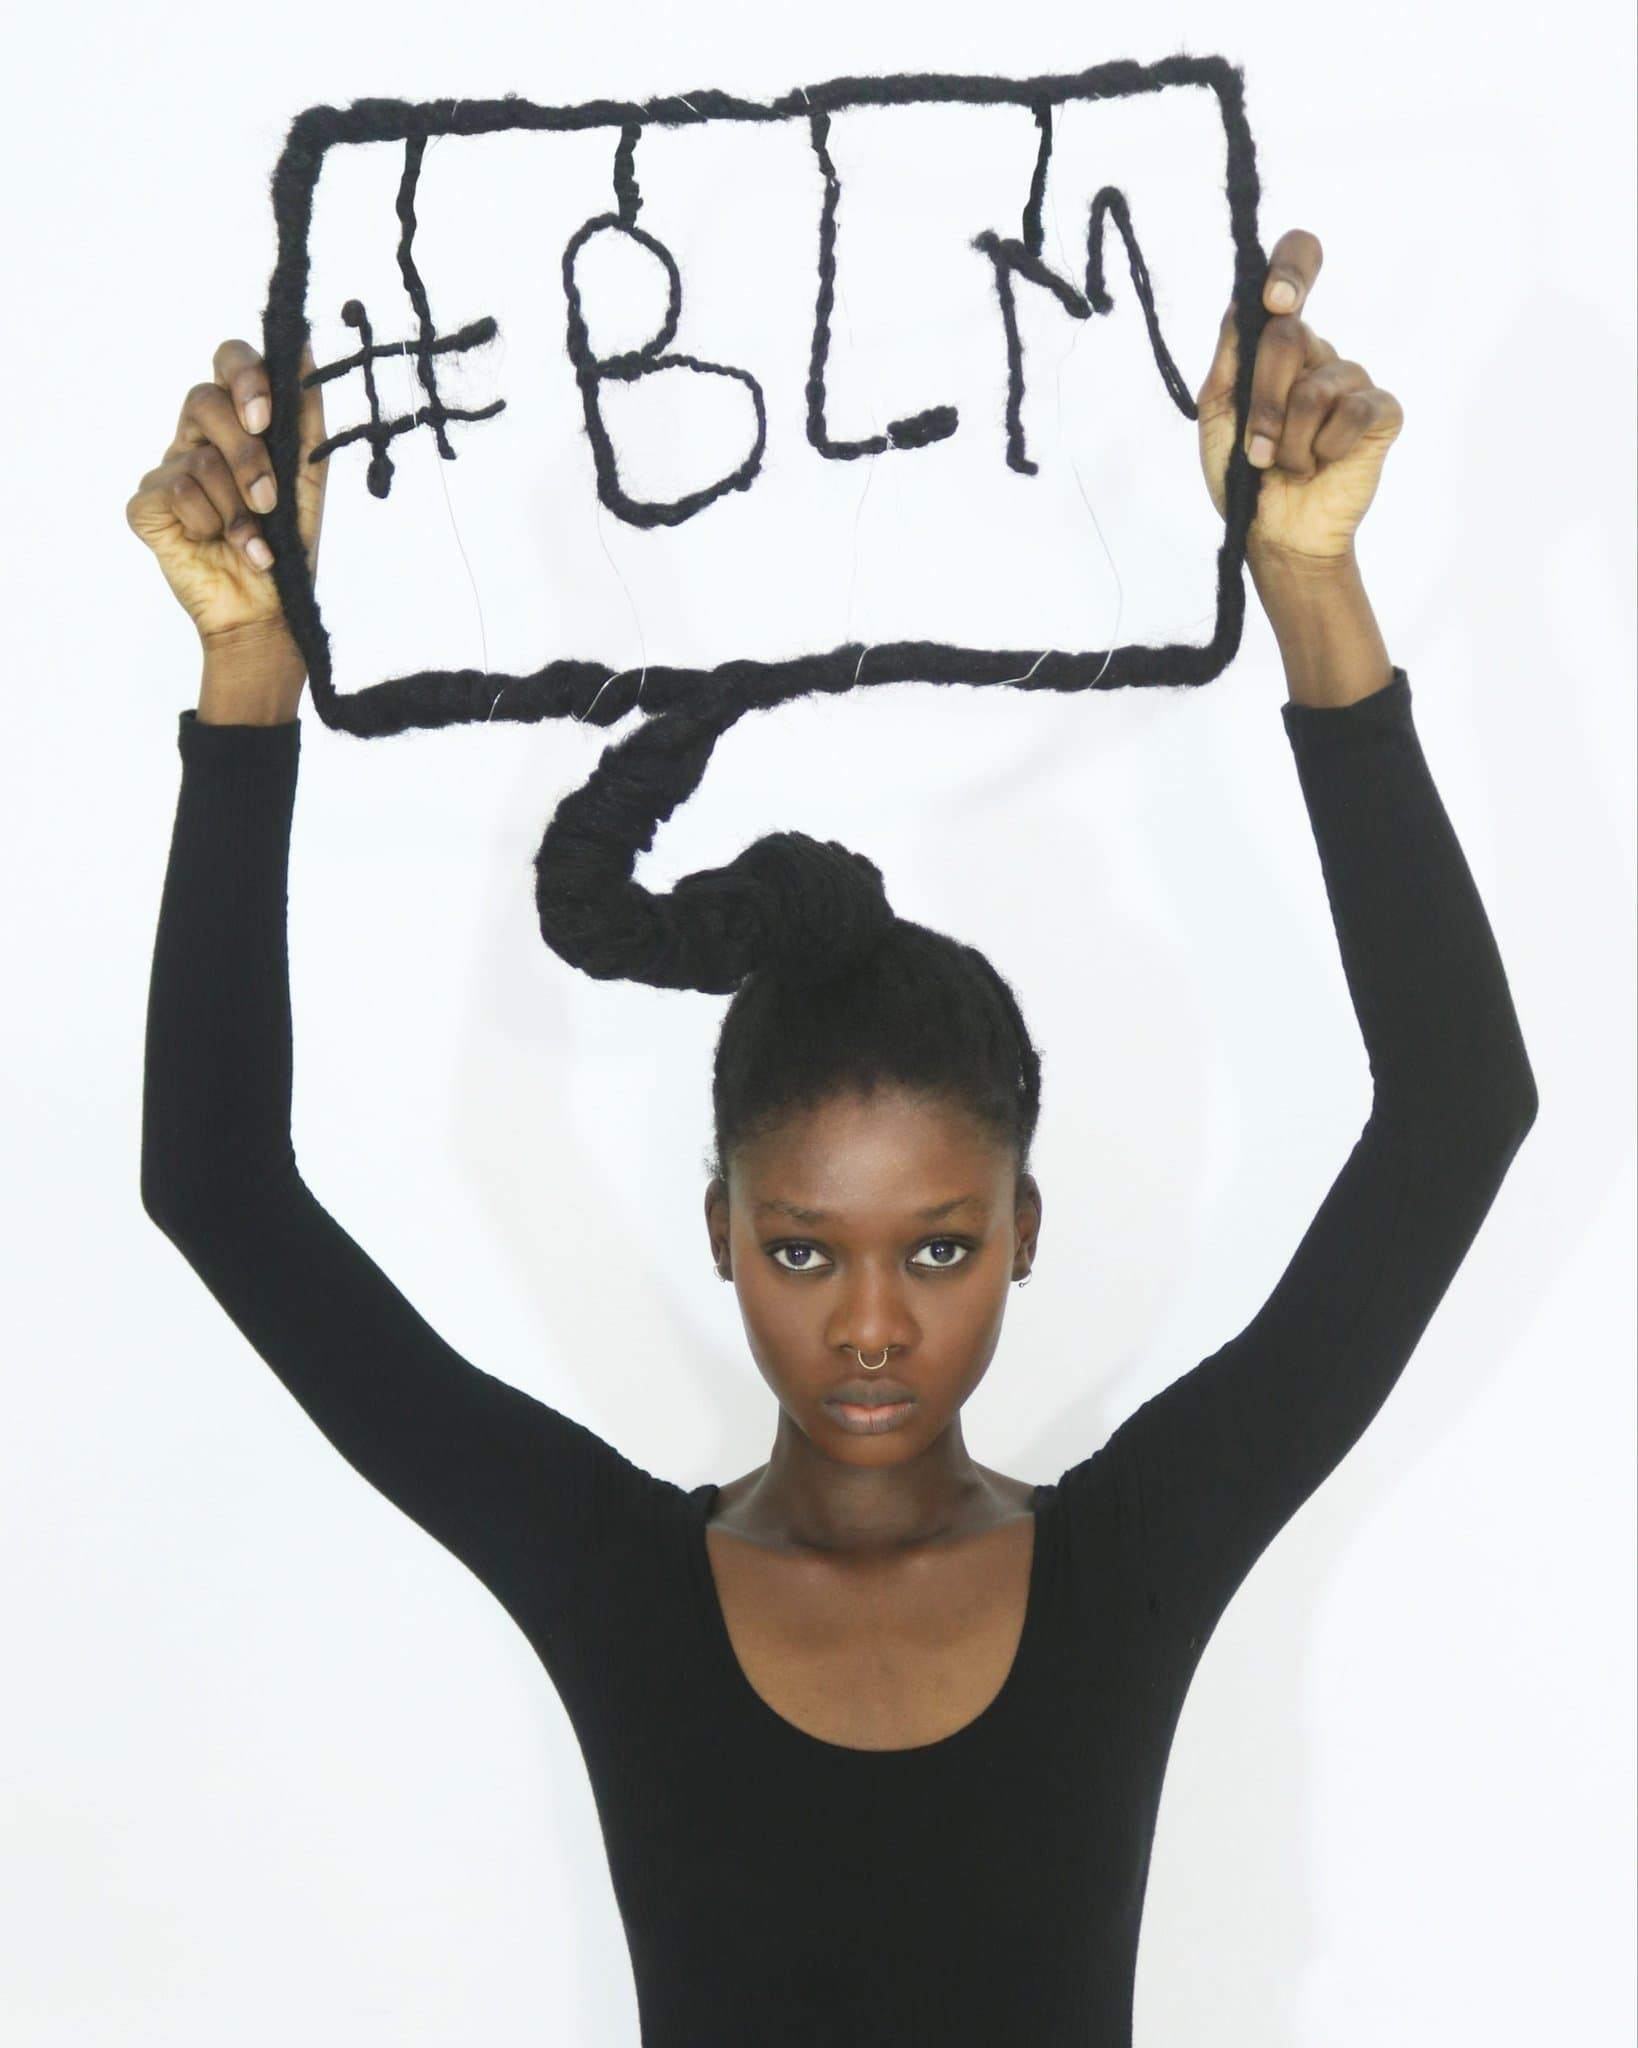 Laetitia Ky Haarskulpturen - Black Lives Matter